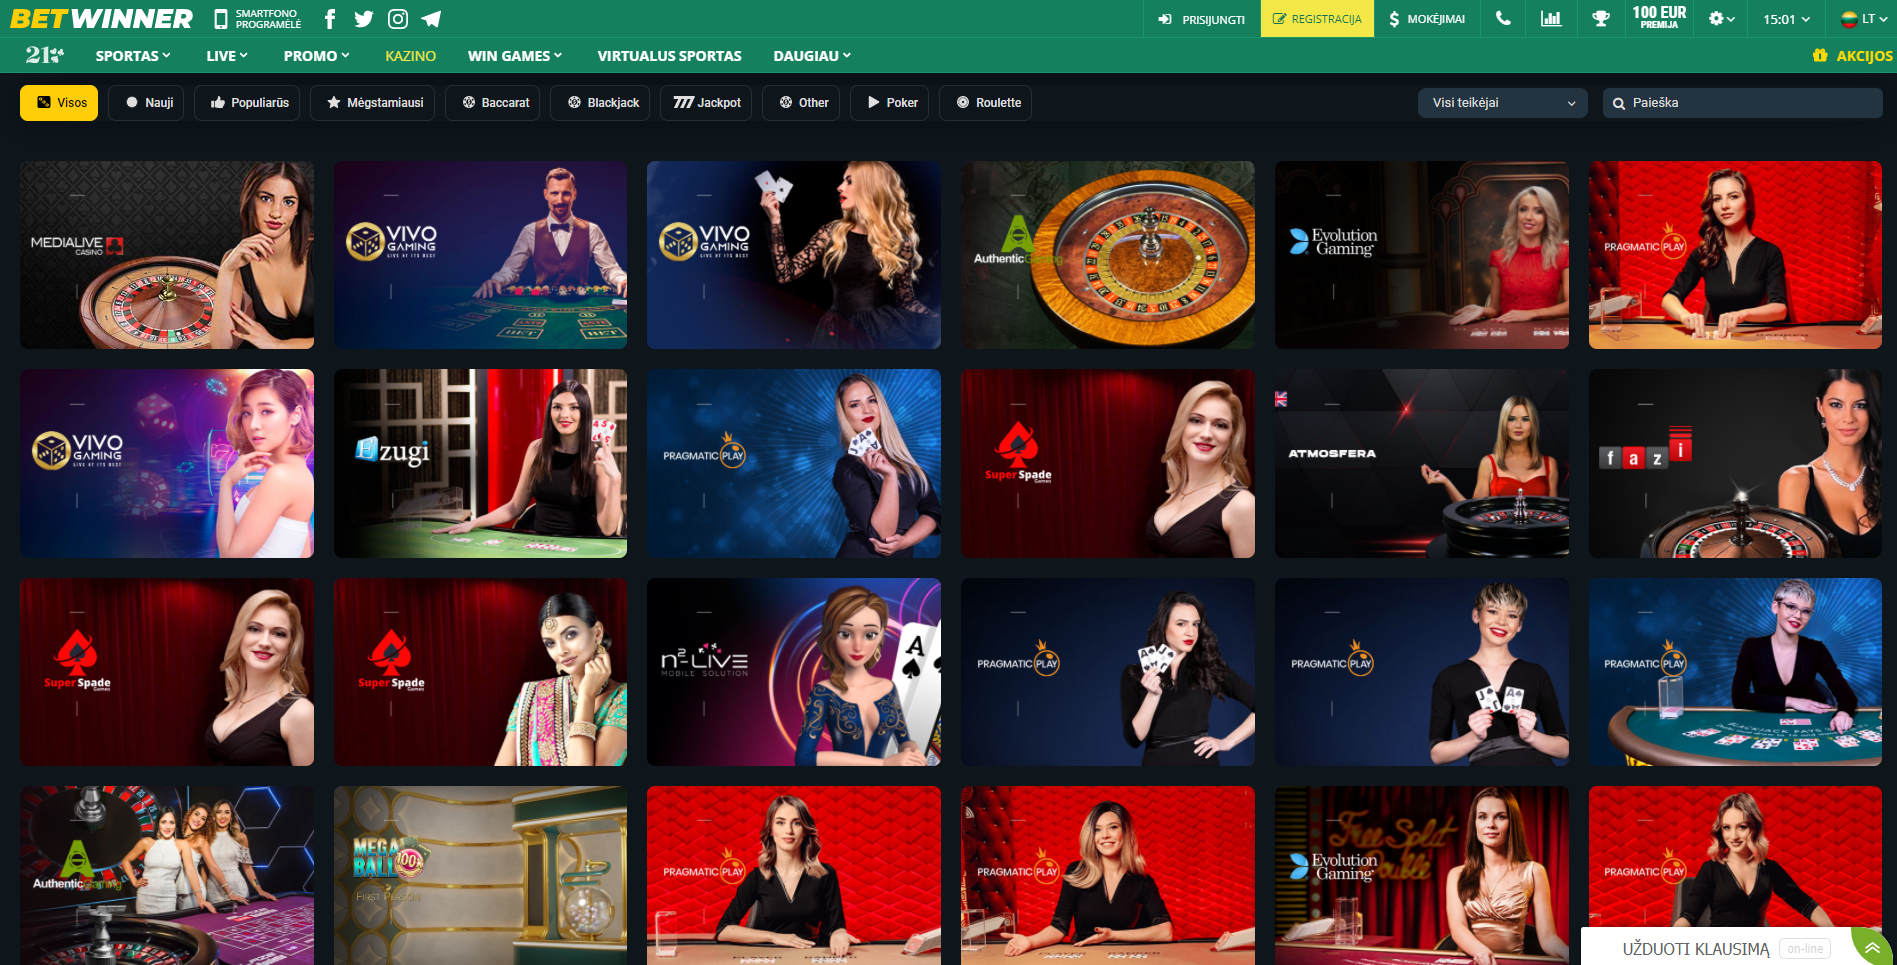 betwinner live casino live kazino vivo gaming evolution gaming authentic gaming ruletė blackjack